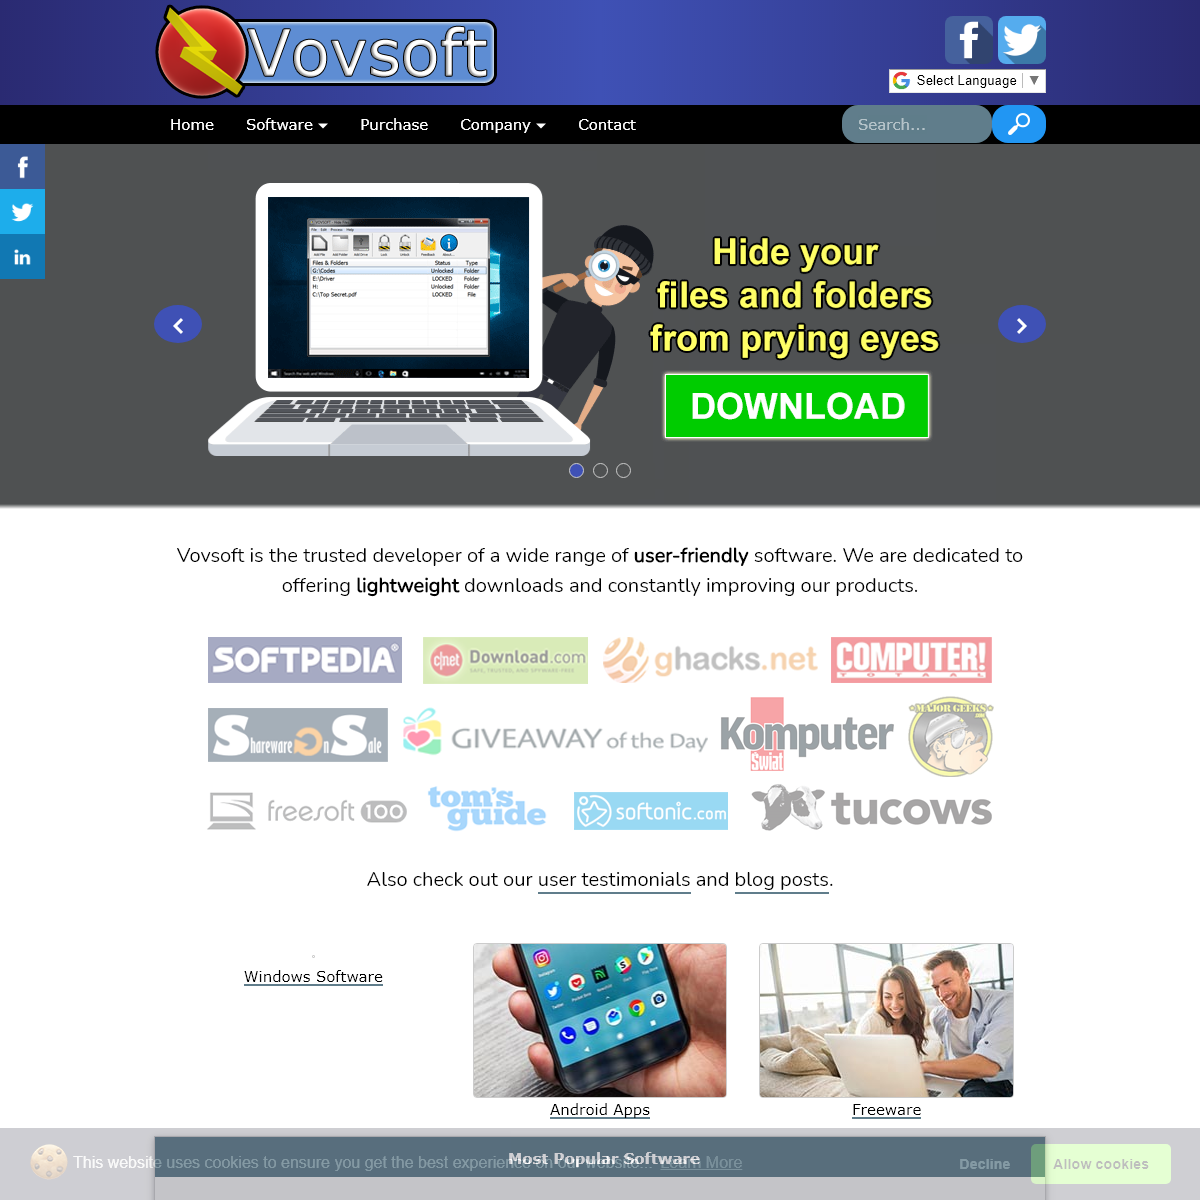 Vovsoft - Home of lightweight software downloads